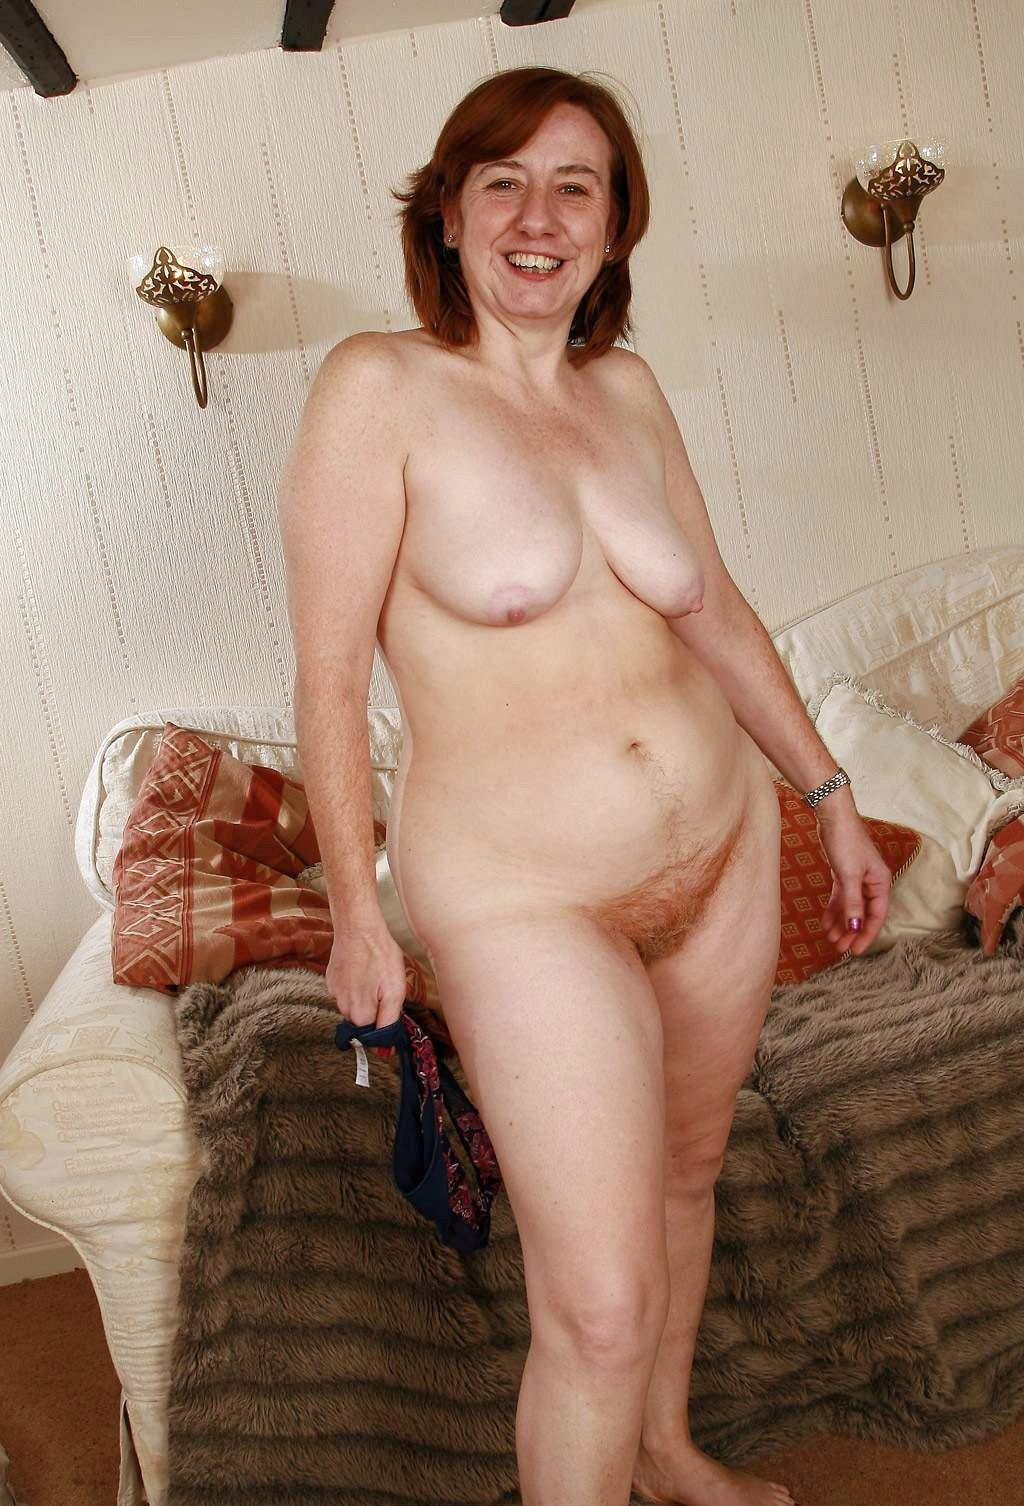 Mature large women naked apologise, but